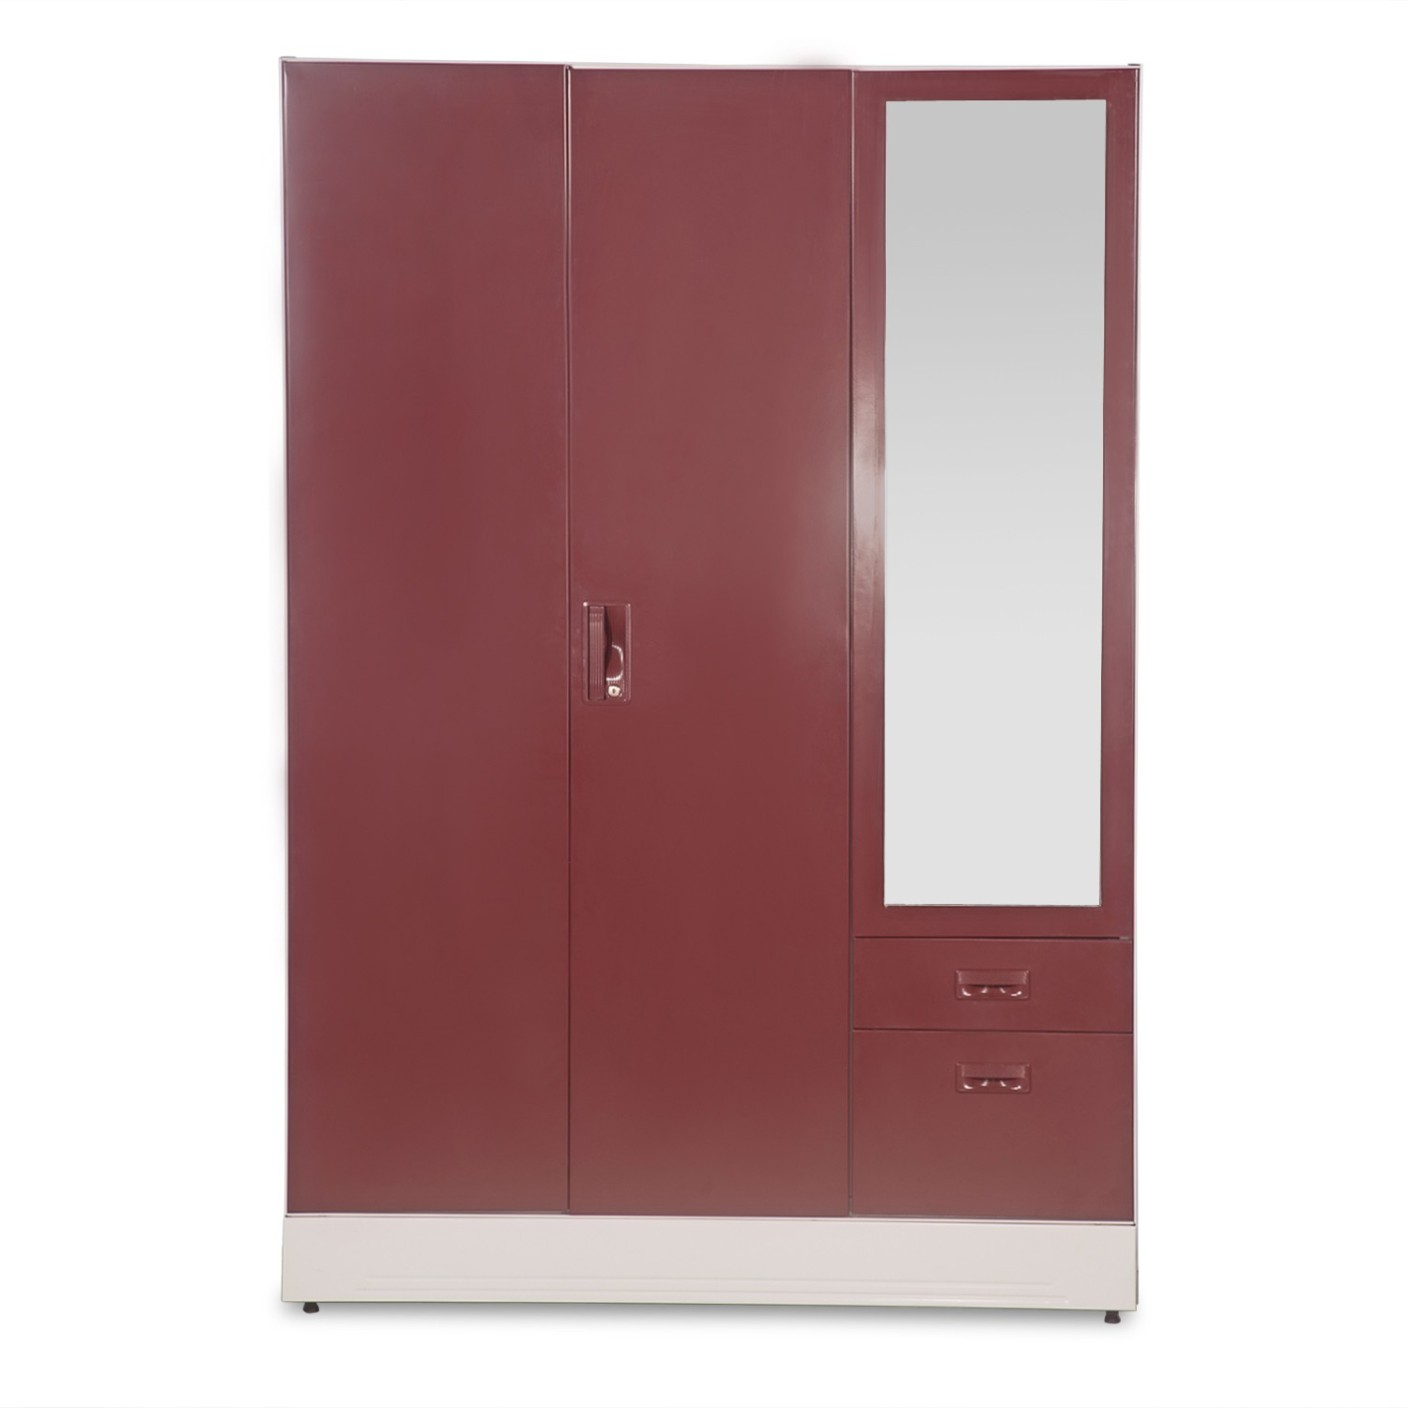 Godrej interio slimline blend metal almirah price in india buy godrej interio slimline blend Godrej interio home furniture price list